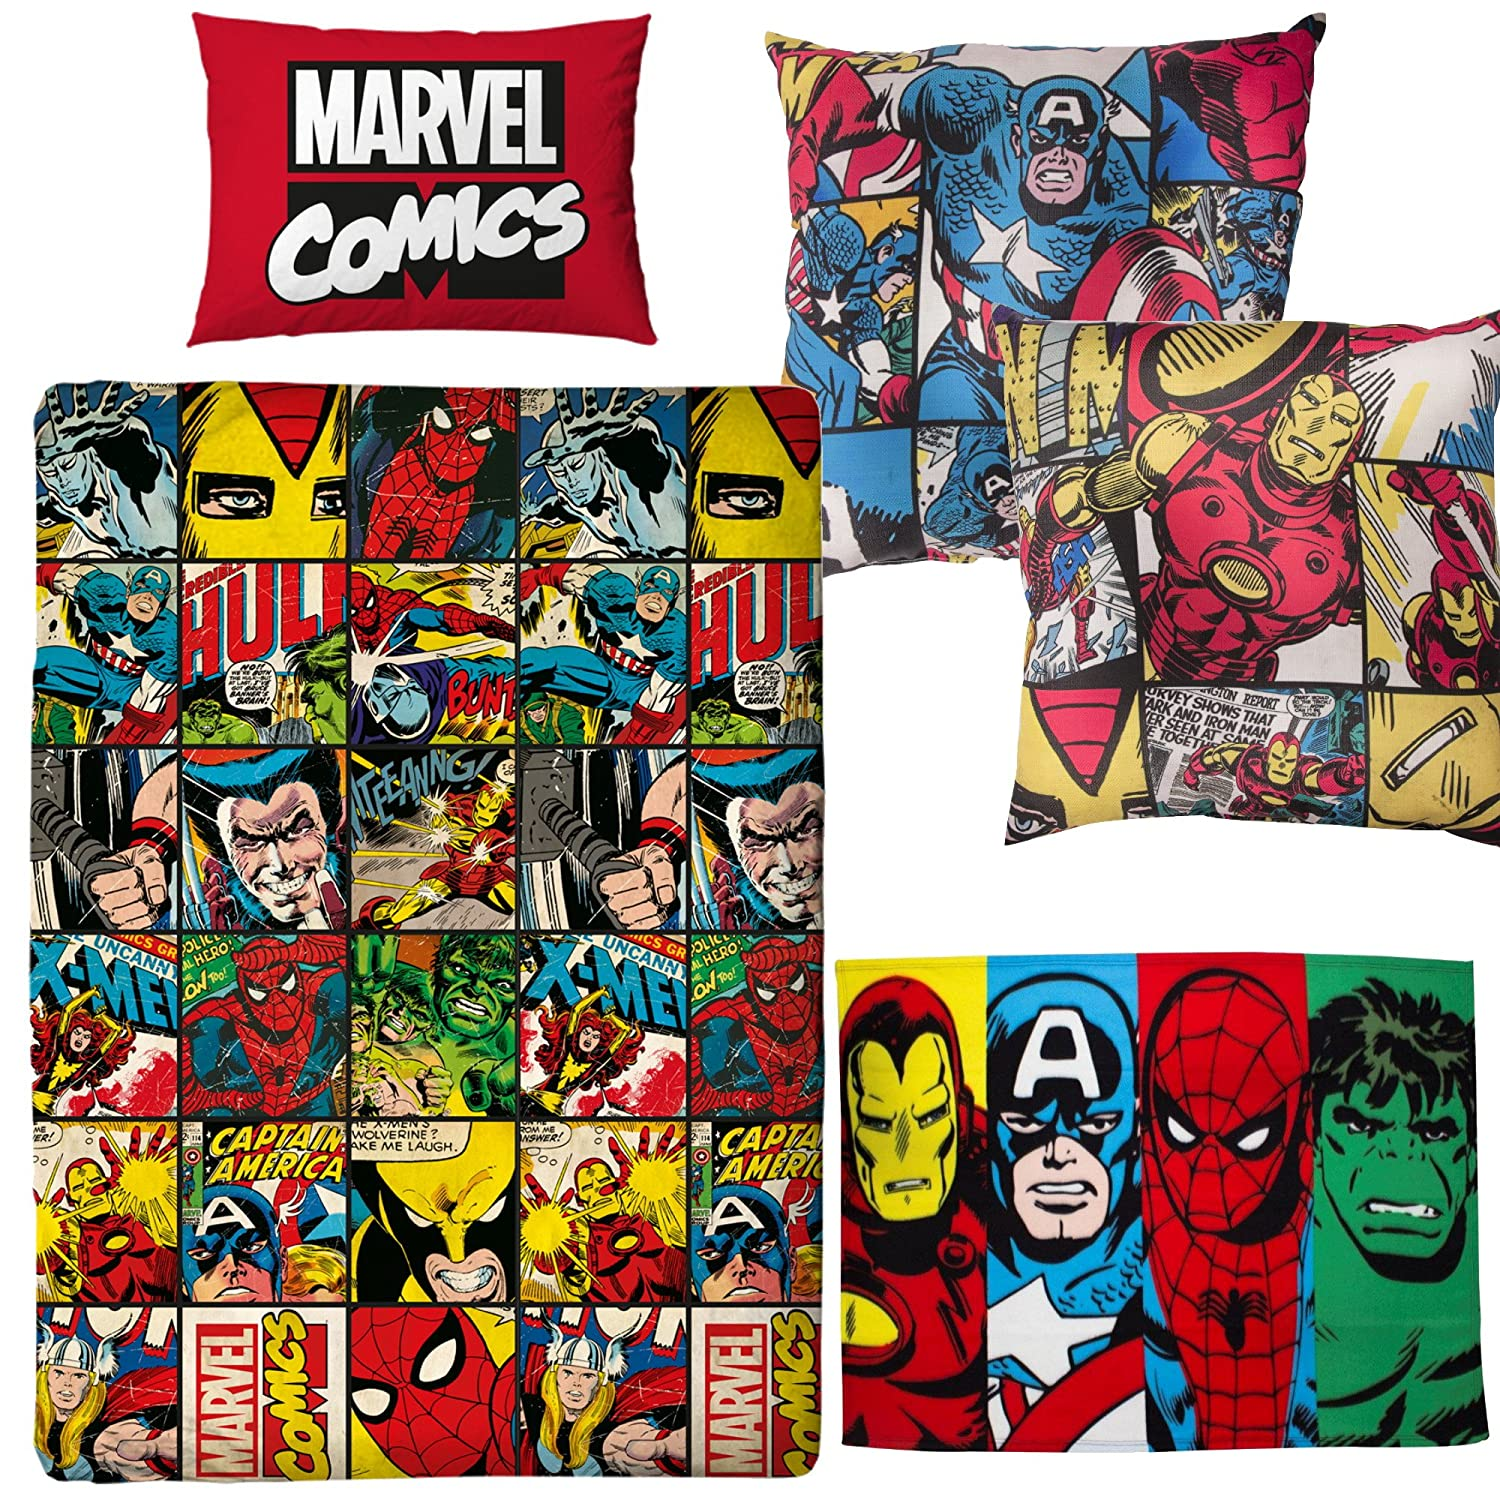 Marvel Comics Defenders Single Duvet Cover & Canvas Cushion & Fleece Blanket Avengers Bedroom Bundle Set Kidco